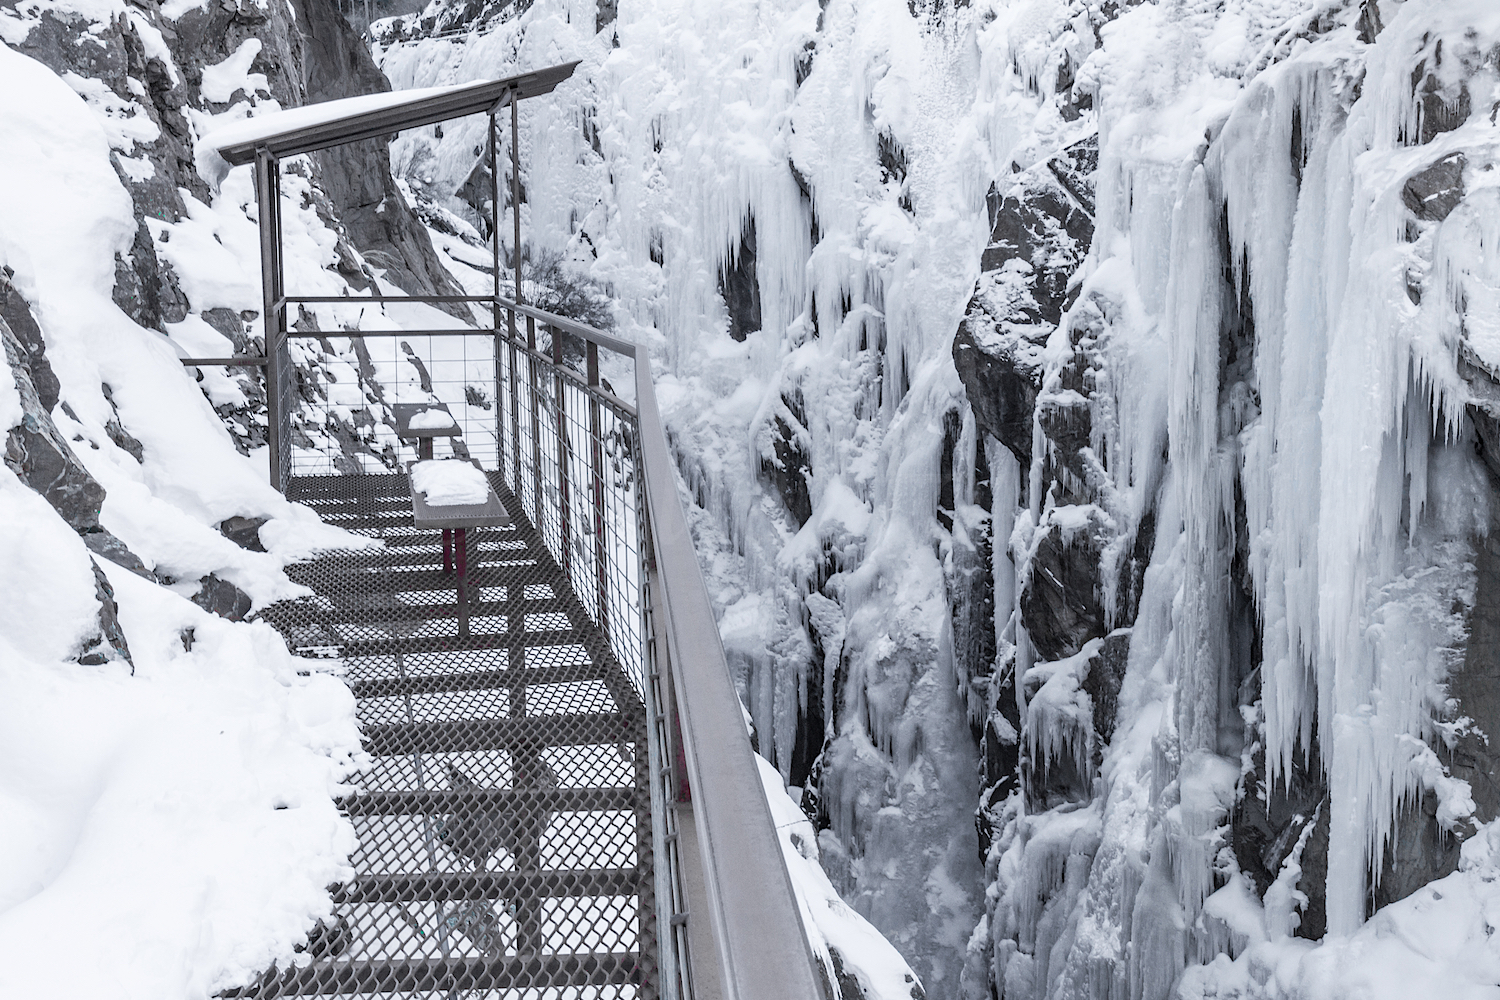 Ouray Ice Park, Image # 4484